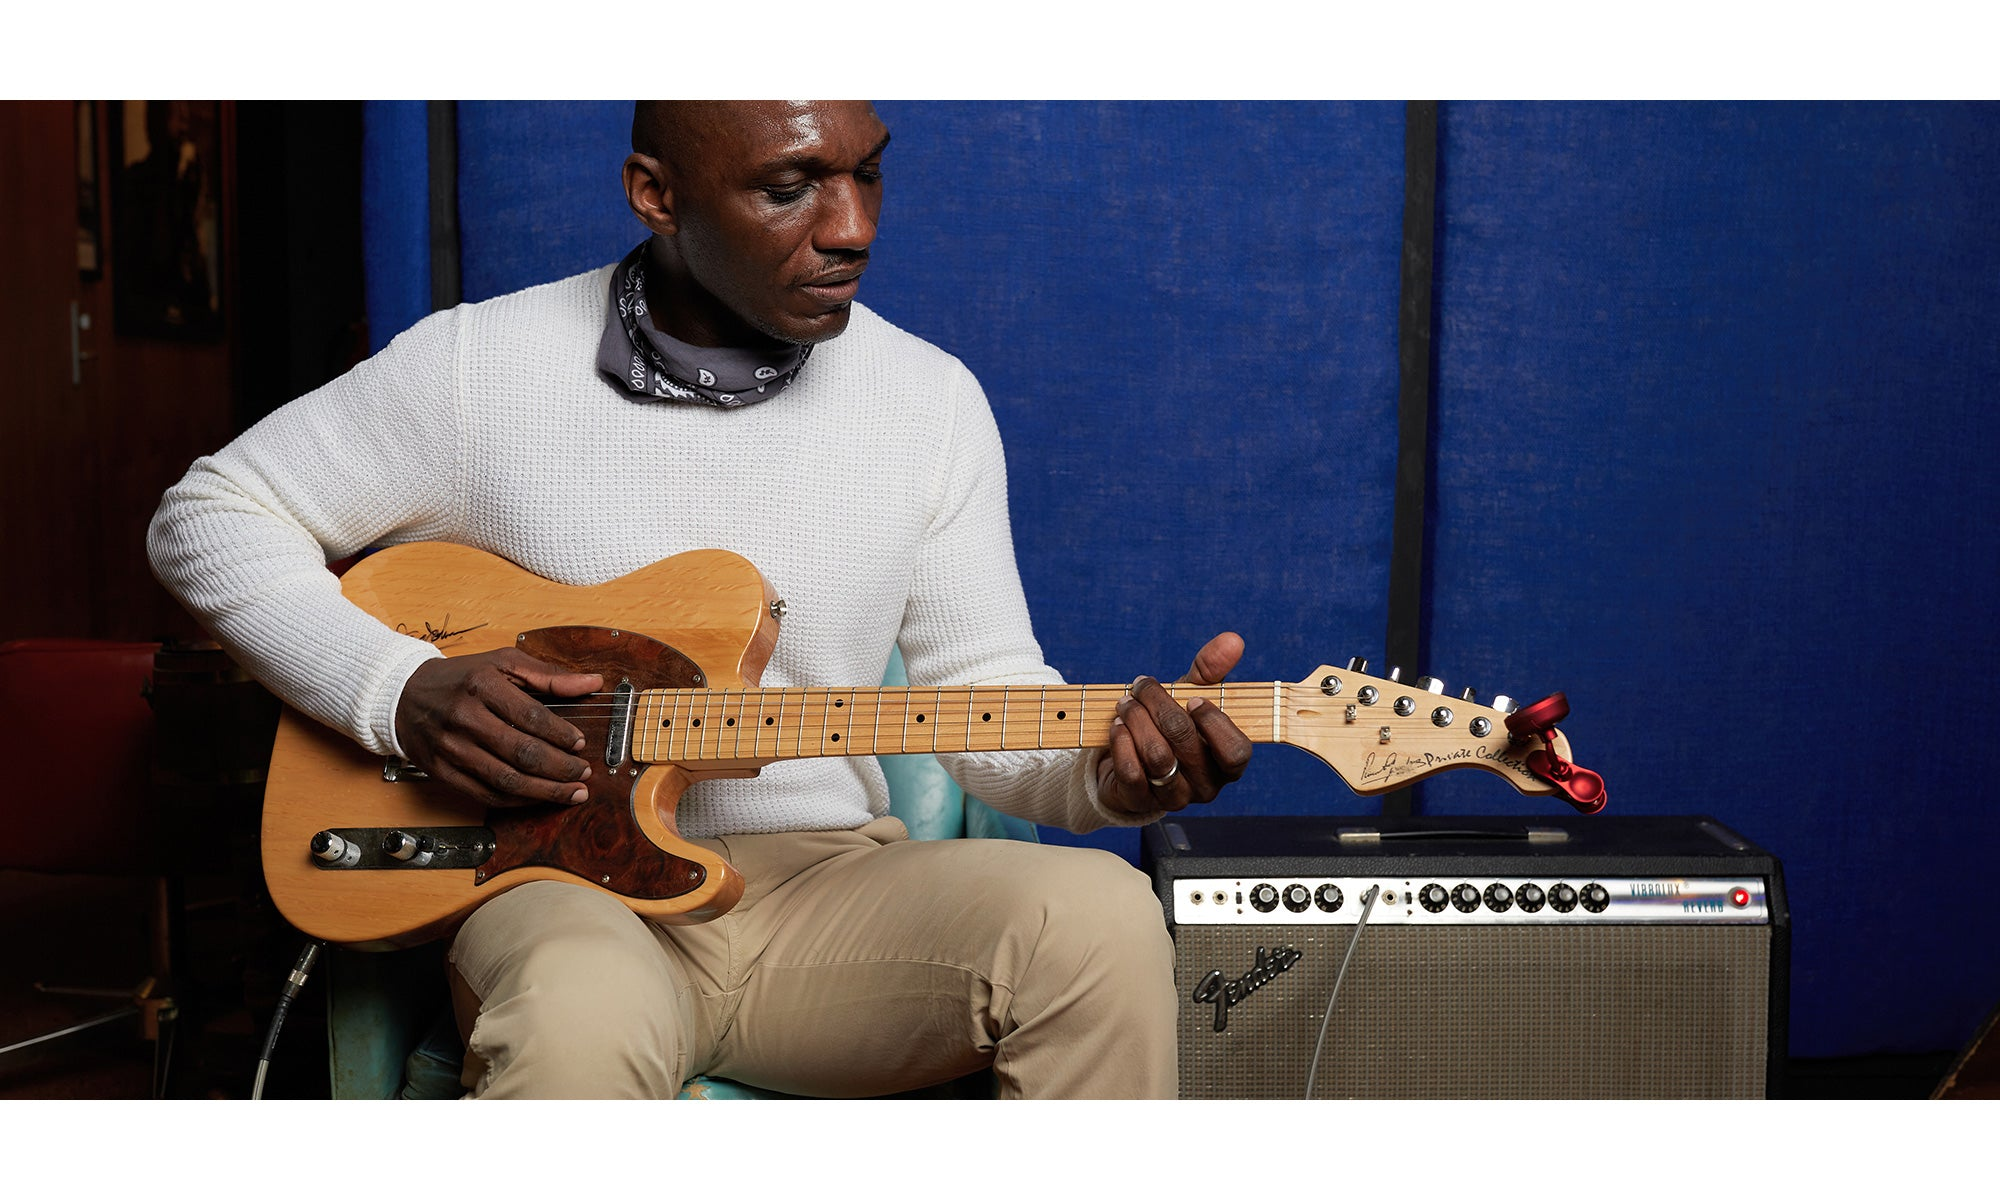 Photo of Grammy-nominated singer/songwriter Cedric Burnside playing electric guitar at the famous Shoals Theatre in Muscle Shoals, AL. He is wearing the Mini Waffle Knit Crew paired with the Pima Cotton Chino Pants.